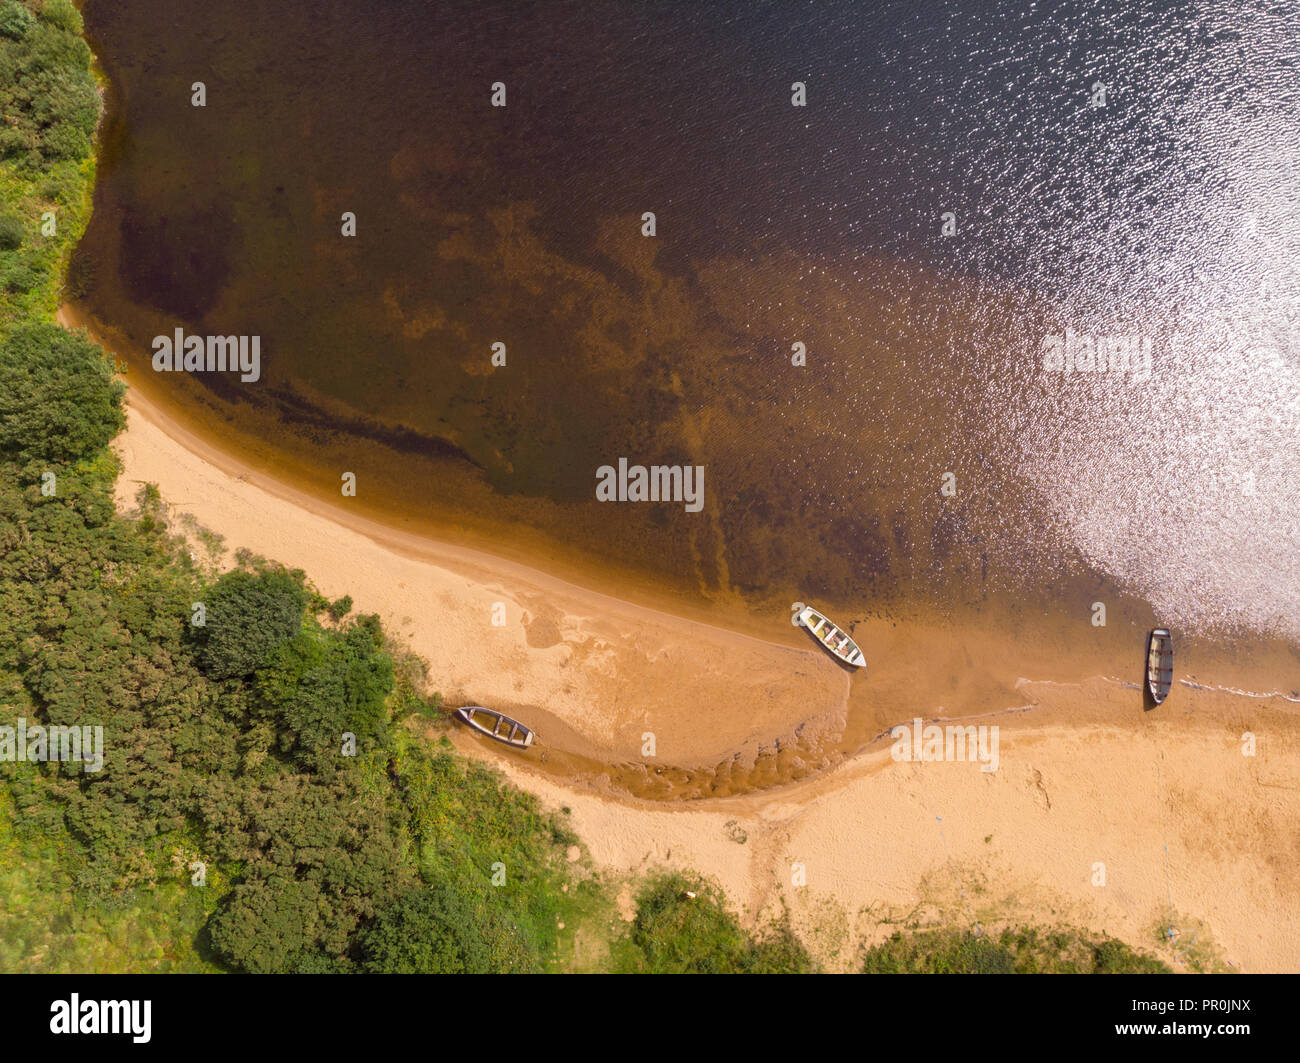 An aerial view of the beach of scenic Lough Nafooey in the Connemara region of Ireland. Stock Photo